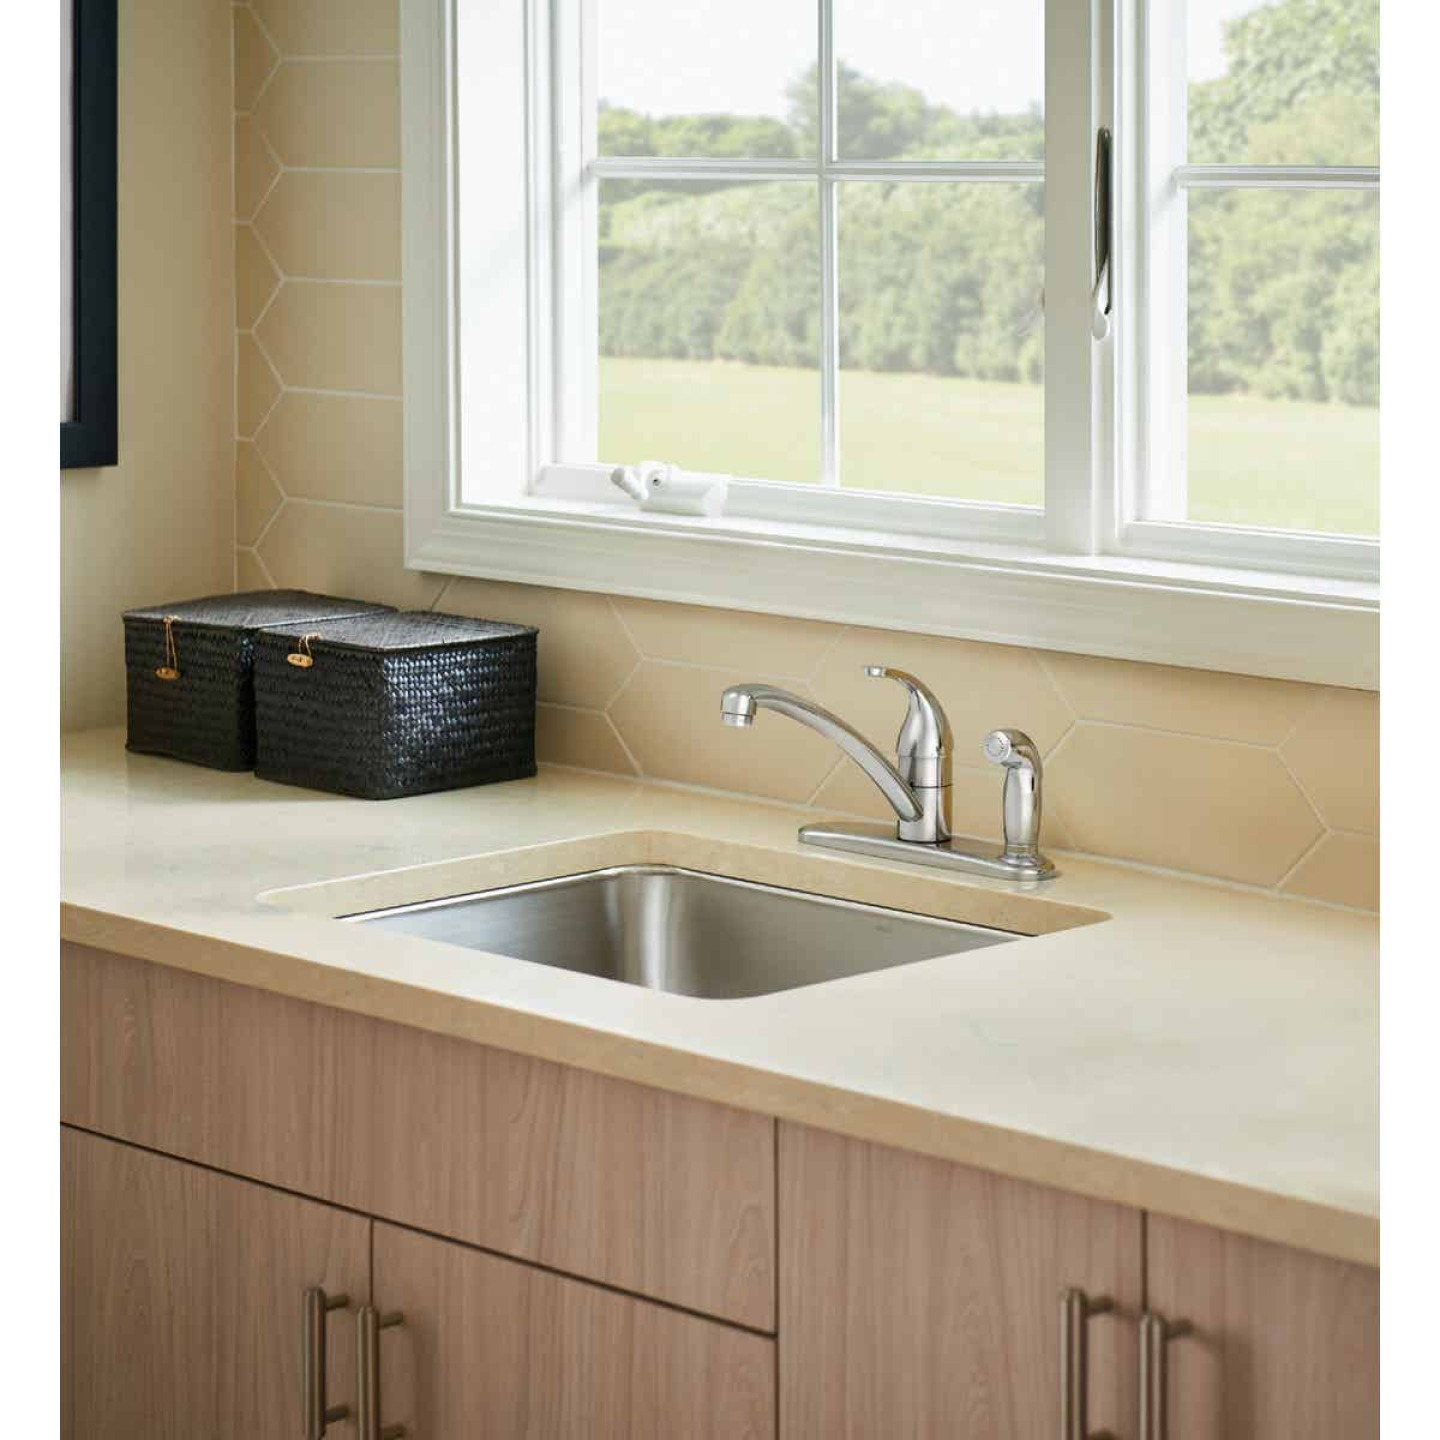 Moen Adler Single Handle Lever Kitchen Faucet with Deck Plate Spray, Chrome Image 2